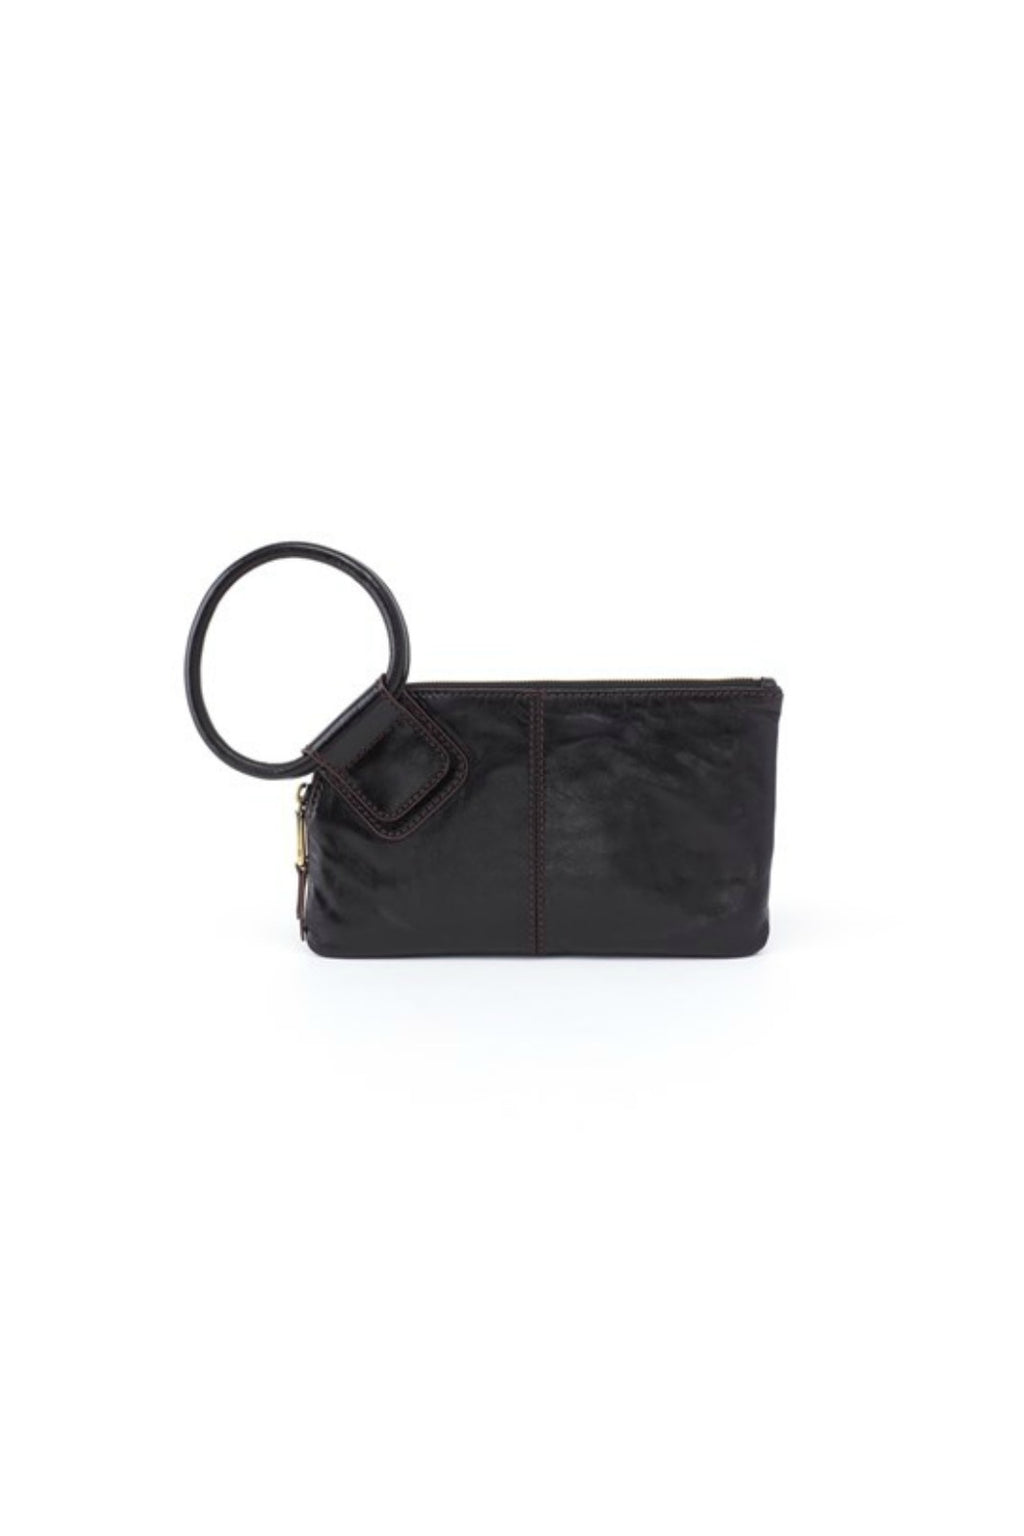 Hobo Sable Wristlet - Black